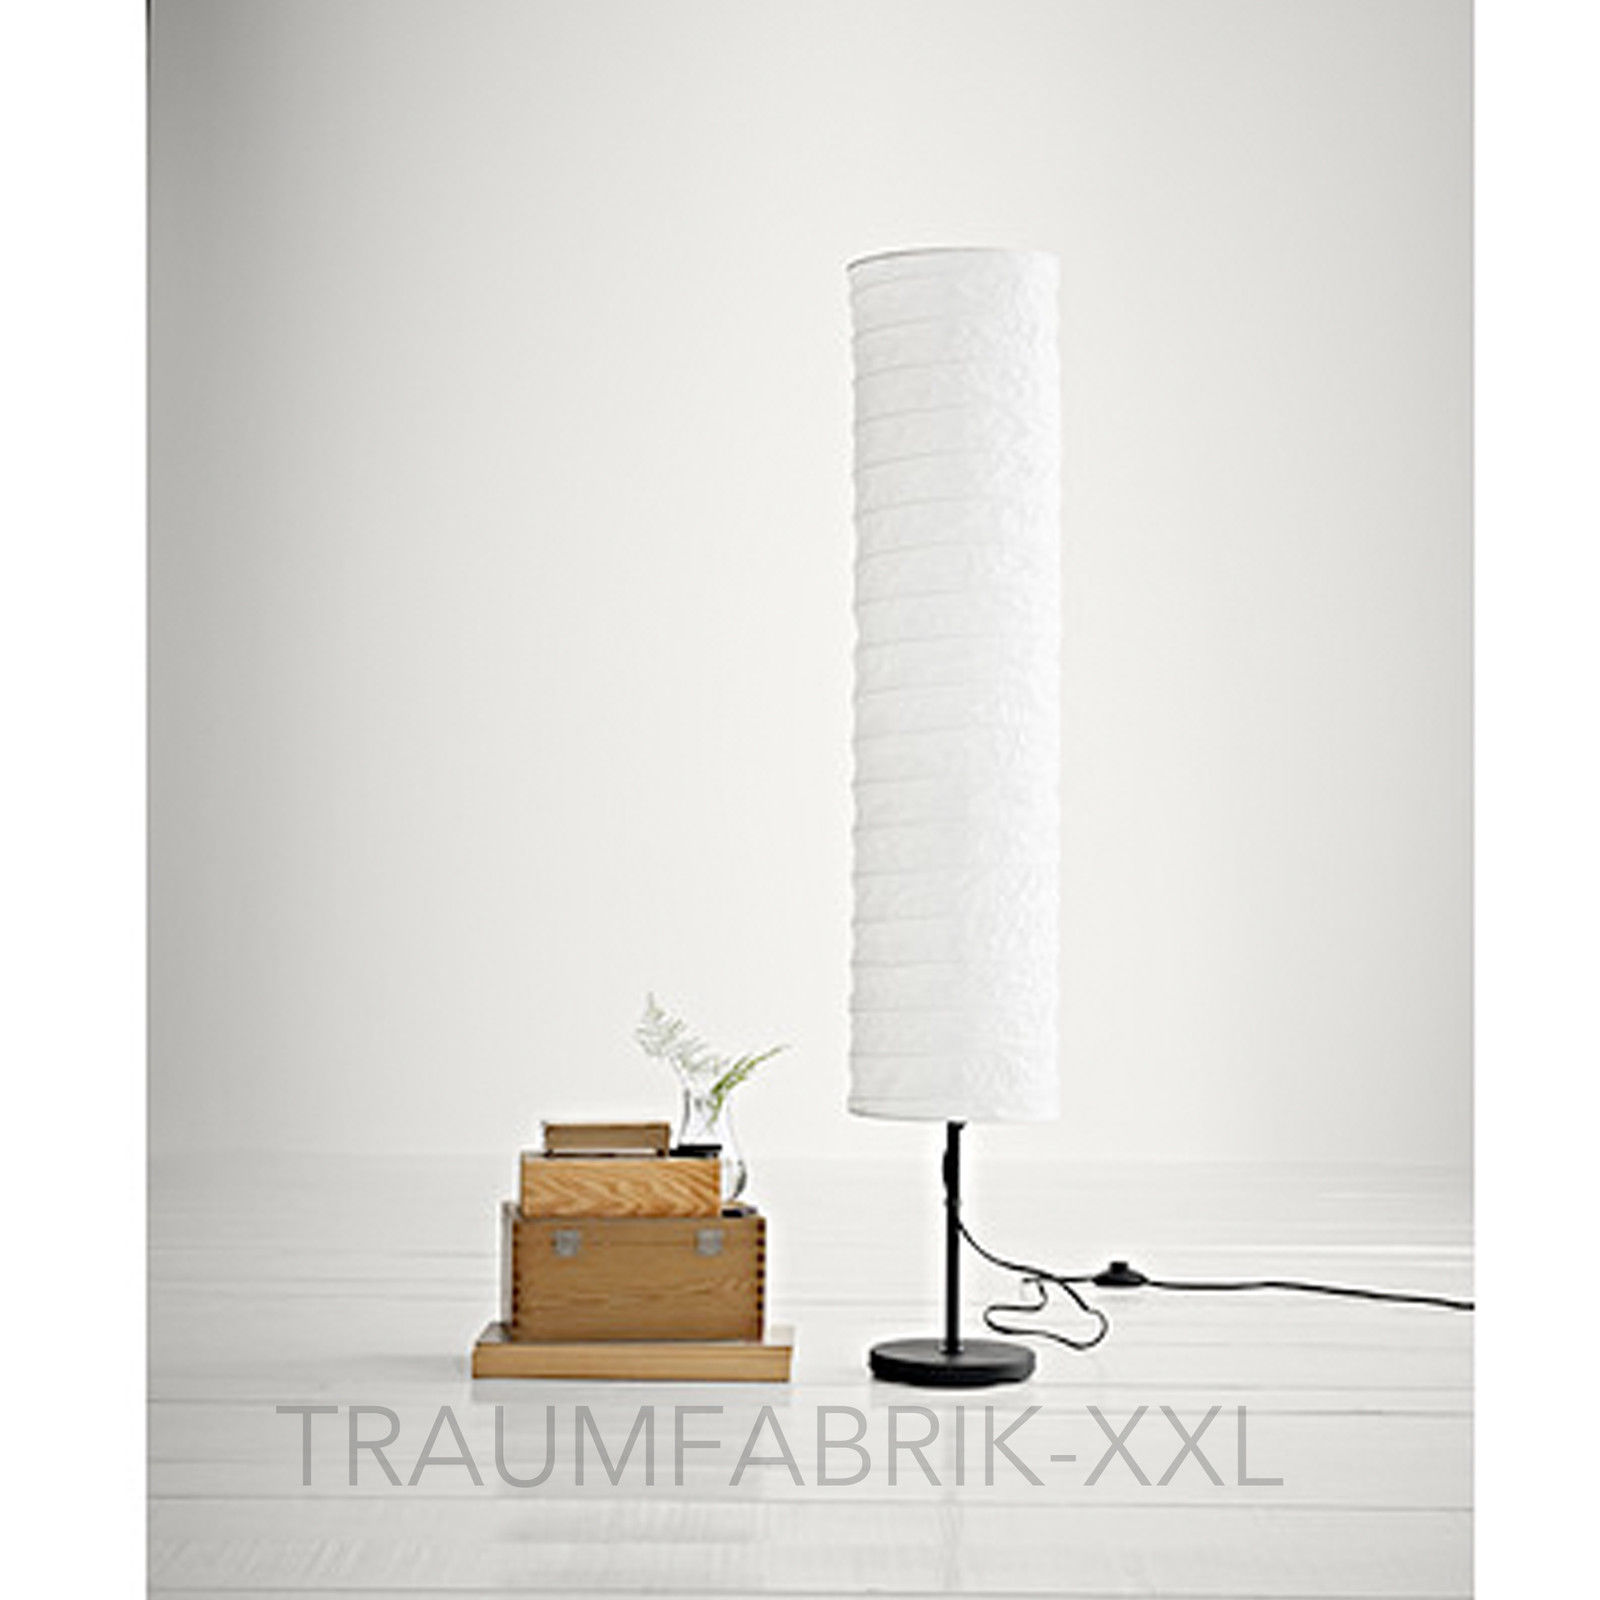 ikea designer lounge lampe leuchte wei stehlampe stehleuchte tischlampe neu ovp traumfabrik xxl. Black Bedroom Furniture Sets. Home Design Ideas